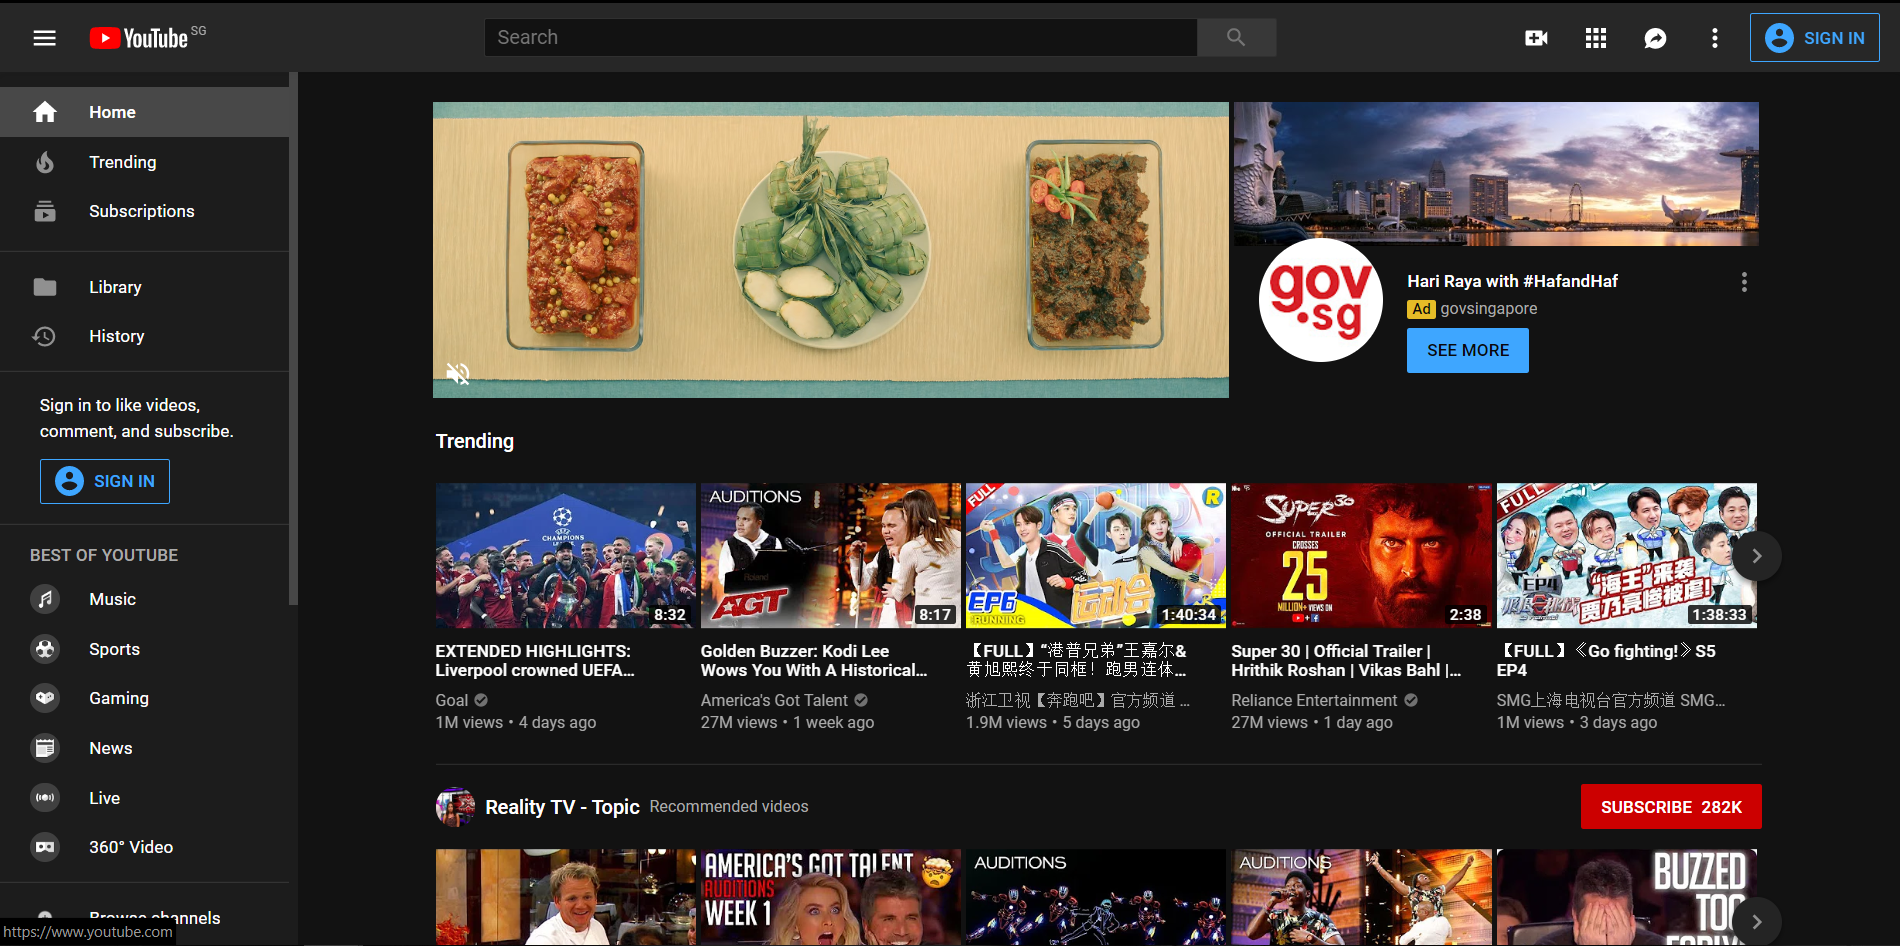 My homepage video icon suddenly becomes too big - YouTube Community